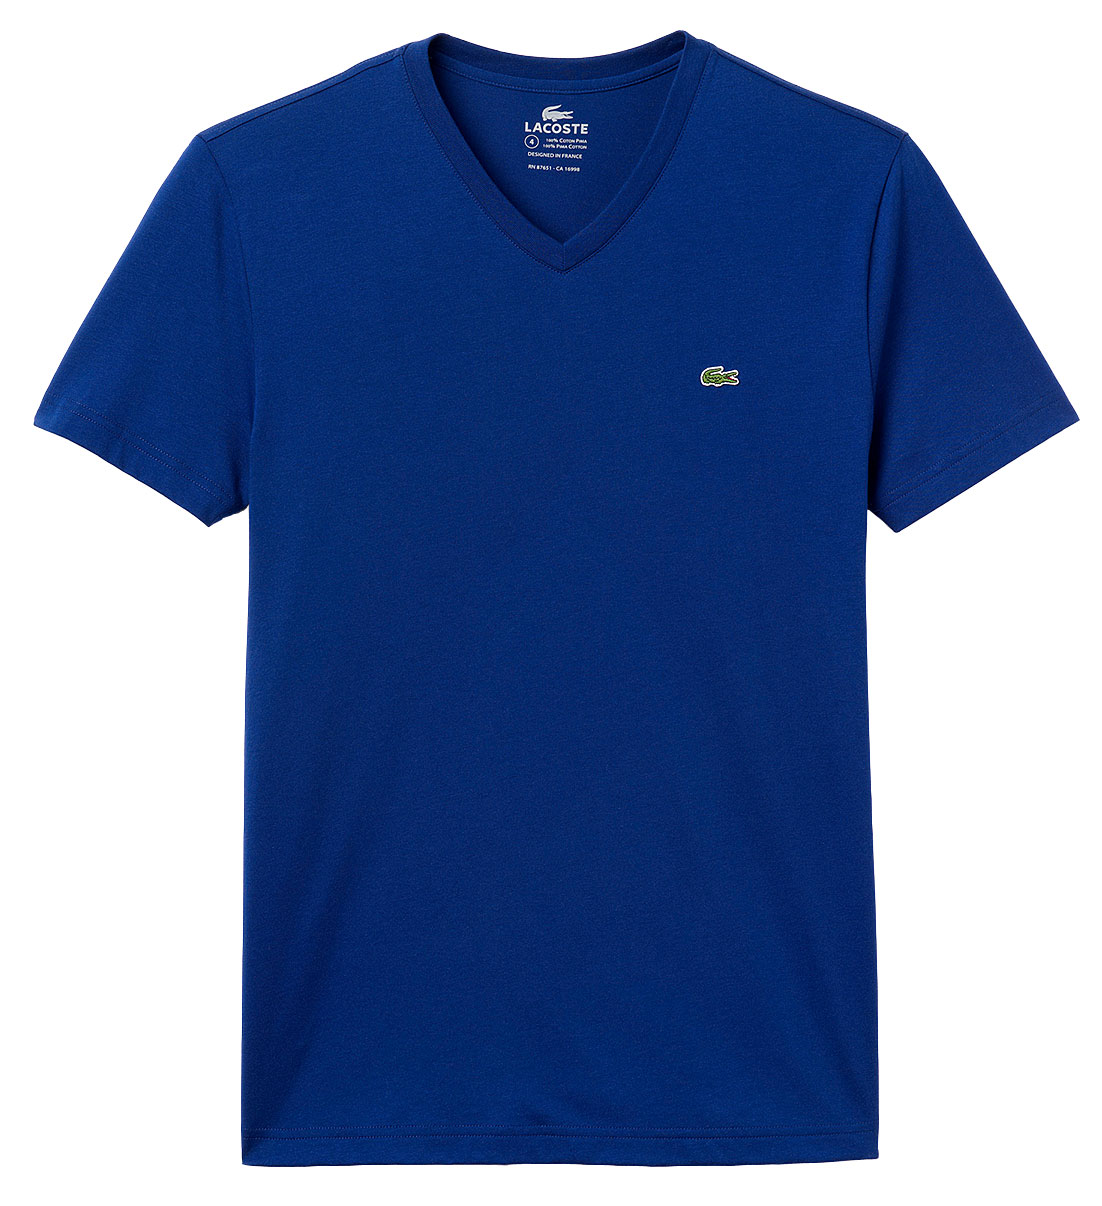 Lacoste Mens Cotton Short Sleeve Tee